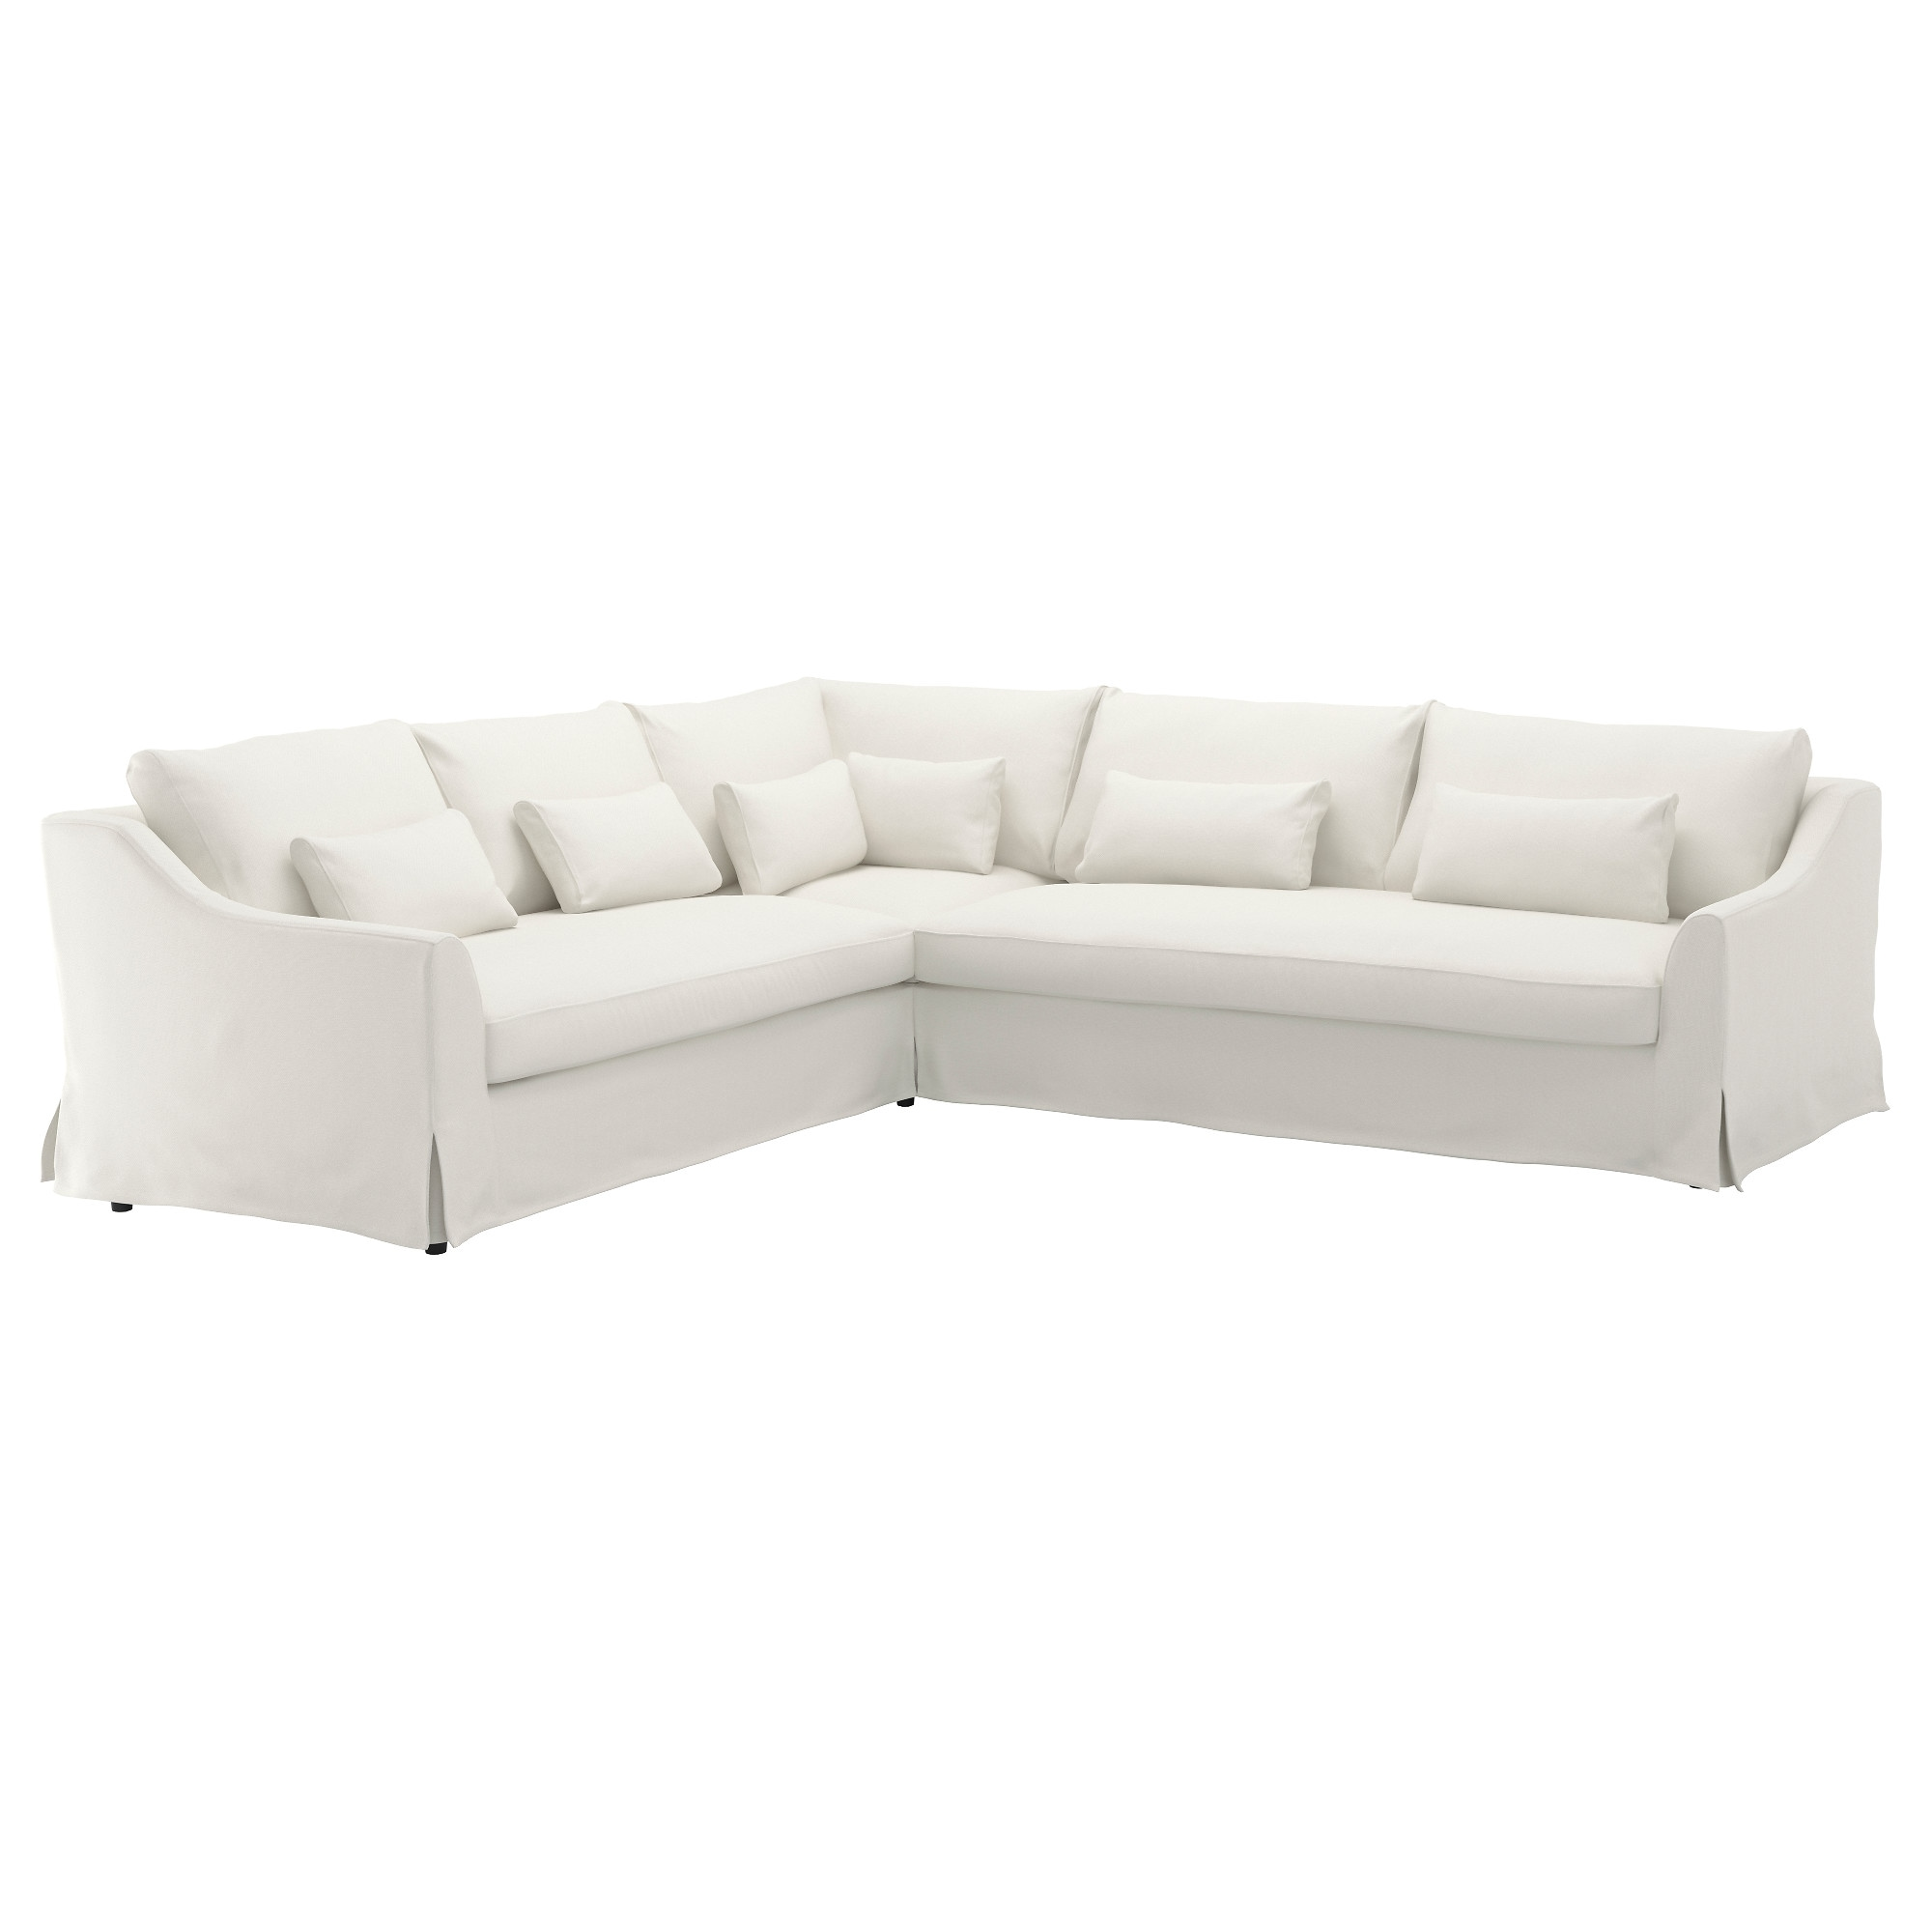 FÄRLÖV sectional5 seat/sofa right Flodafors white Height including back cushions  sc 1 st  Ikea : corner sectional sofa - Sectionals, Sofas & Couches